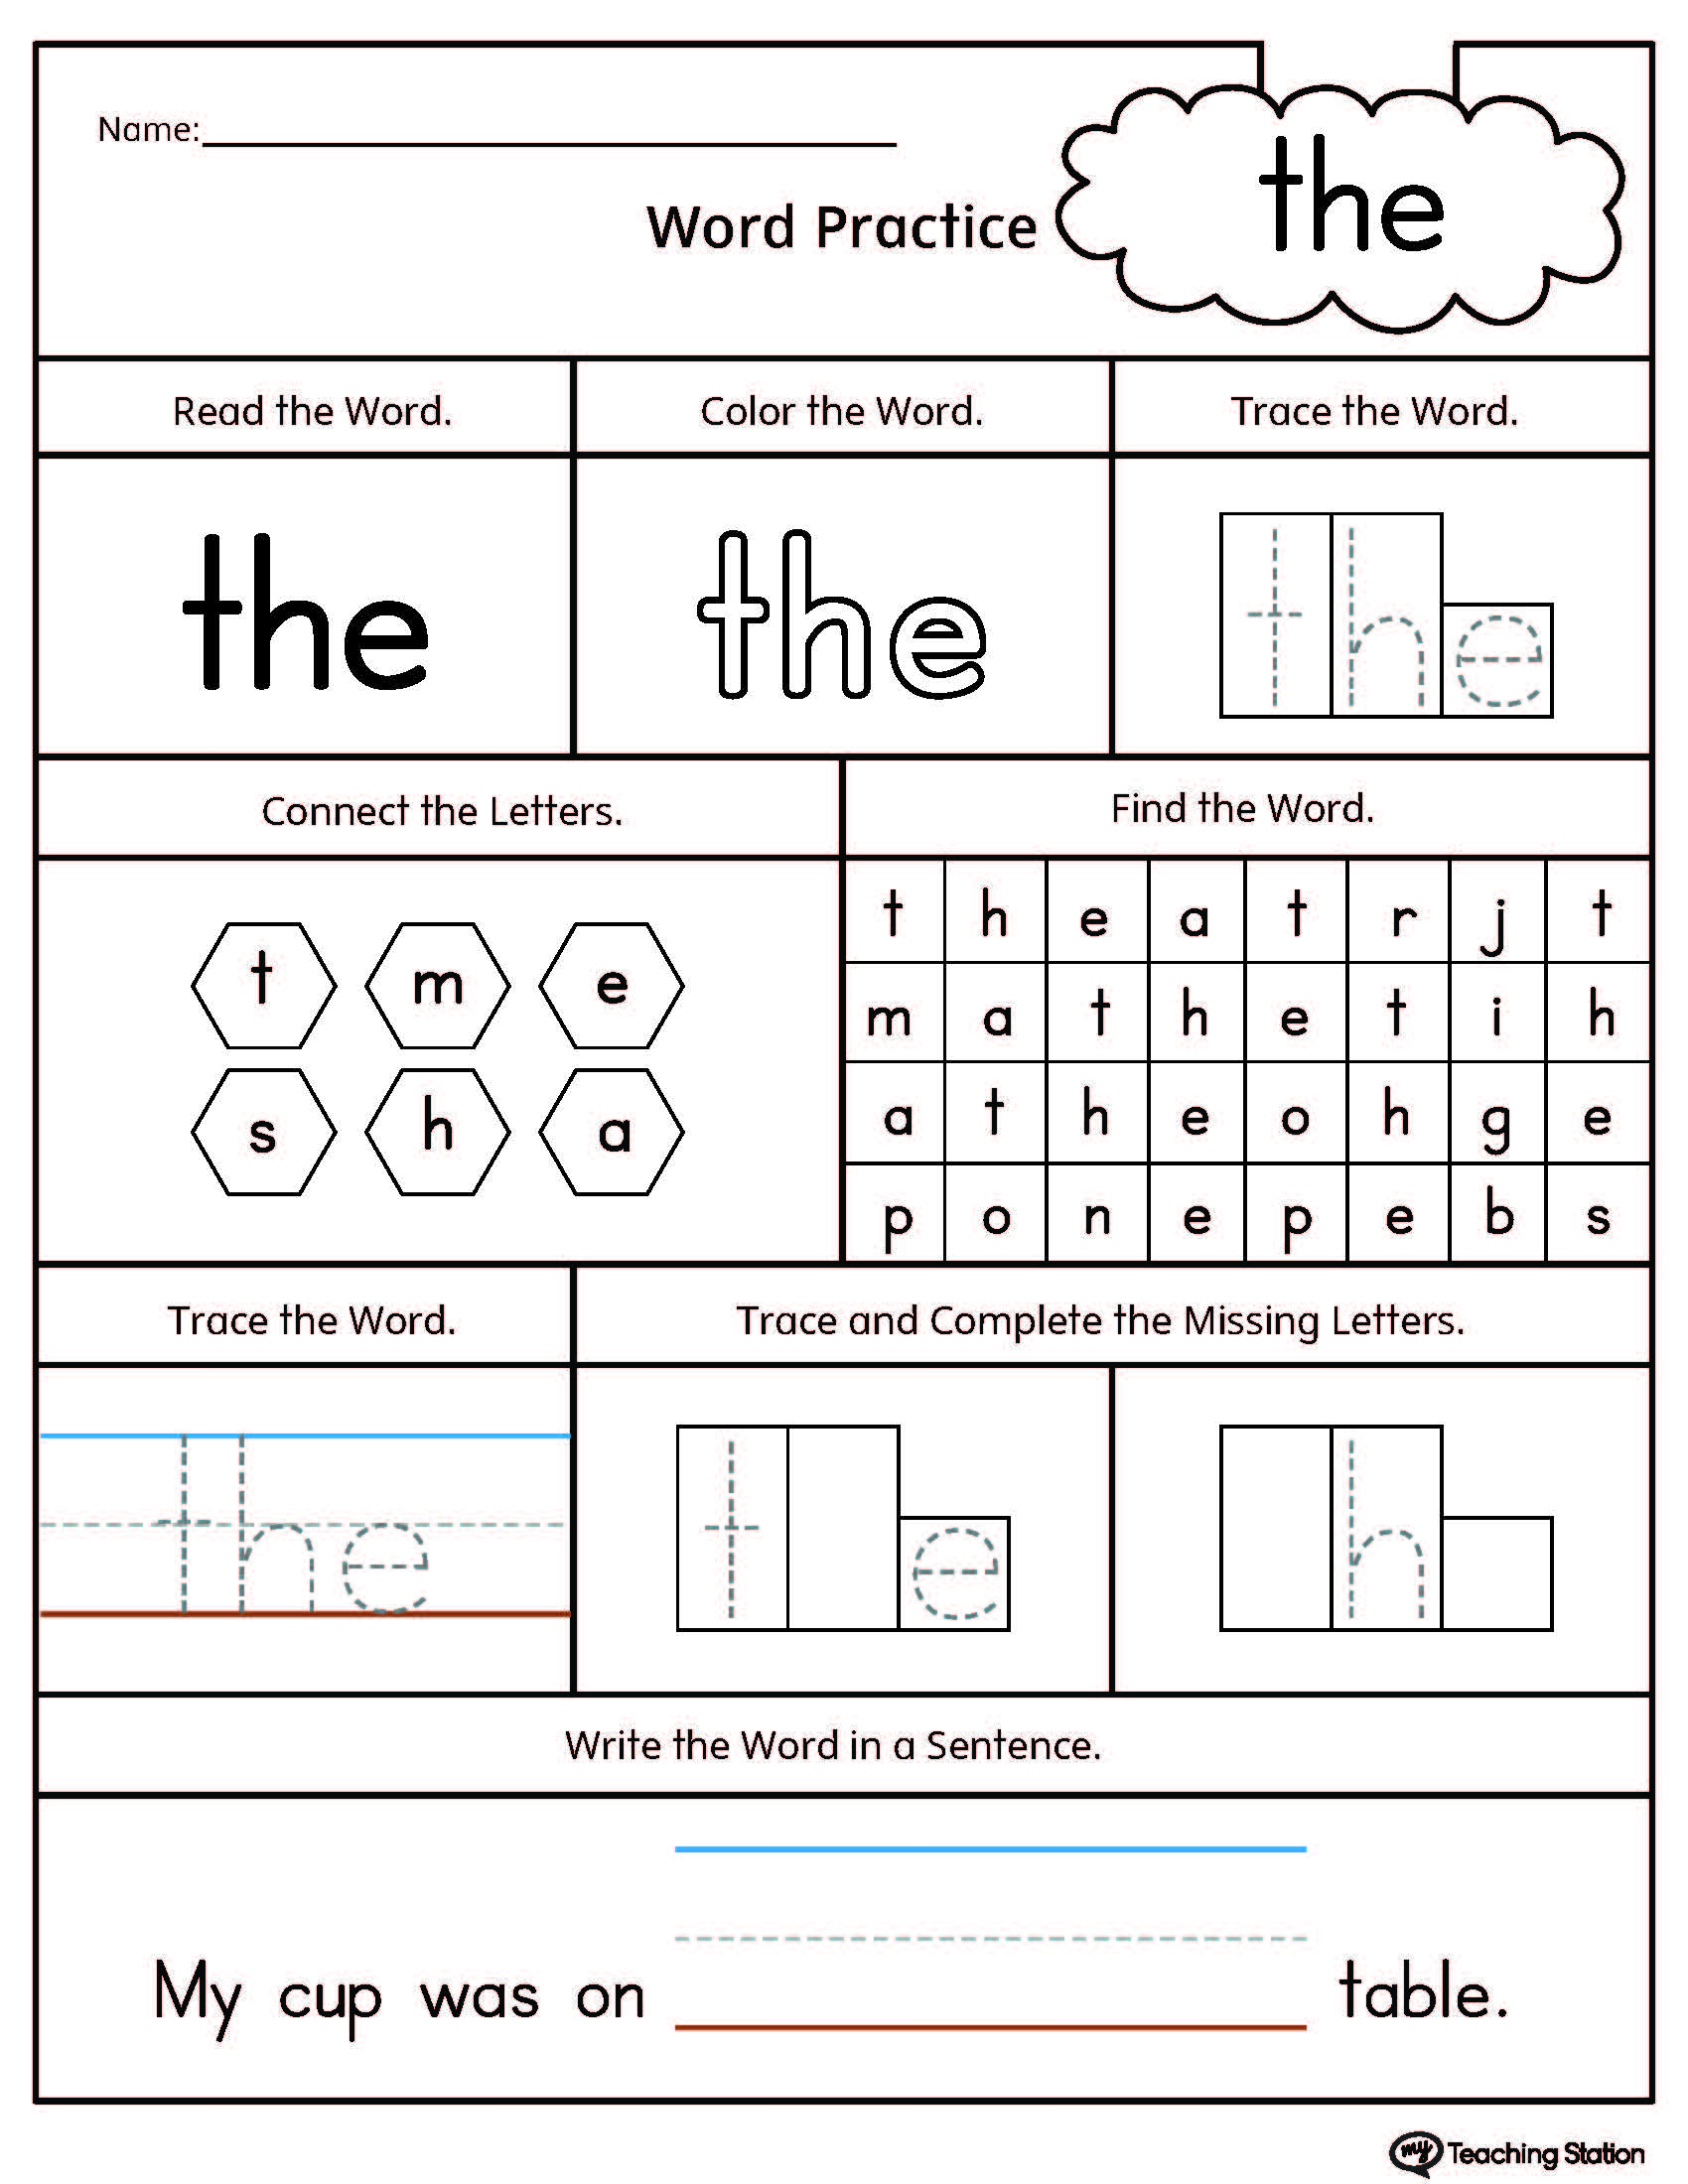 Worksheets Printable Educational Worksheets high frequency words printable worksheets myteachingstation com sight word the worksheet